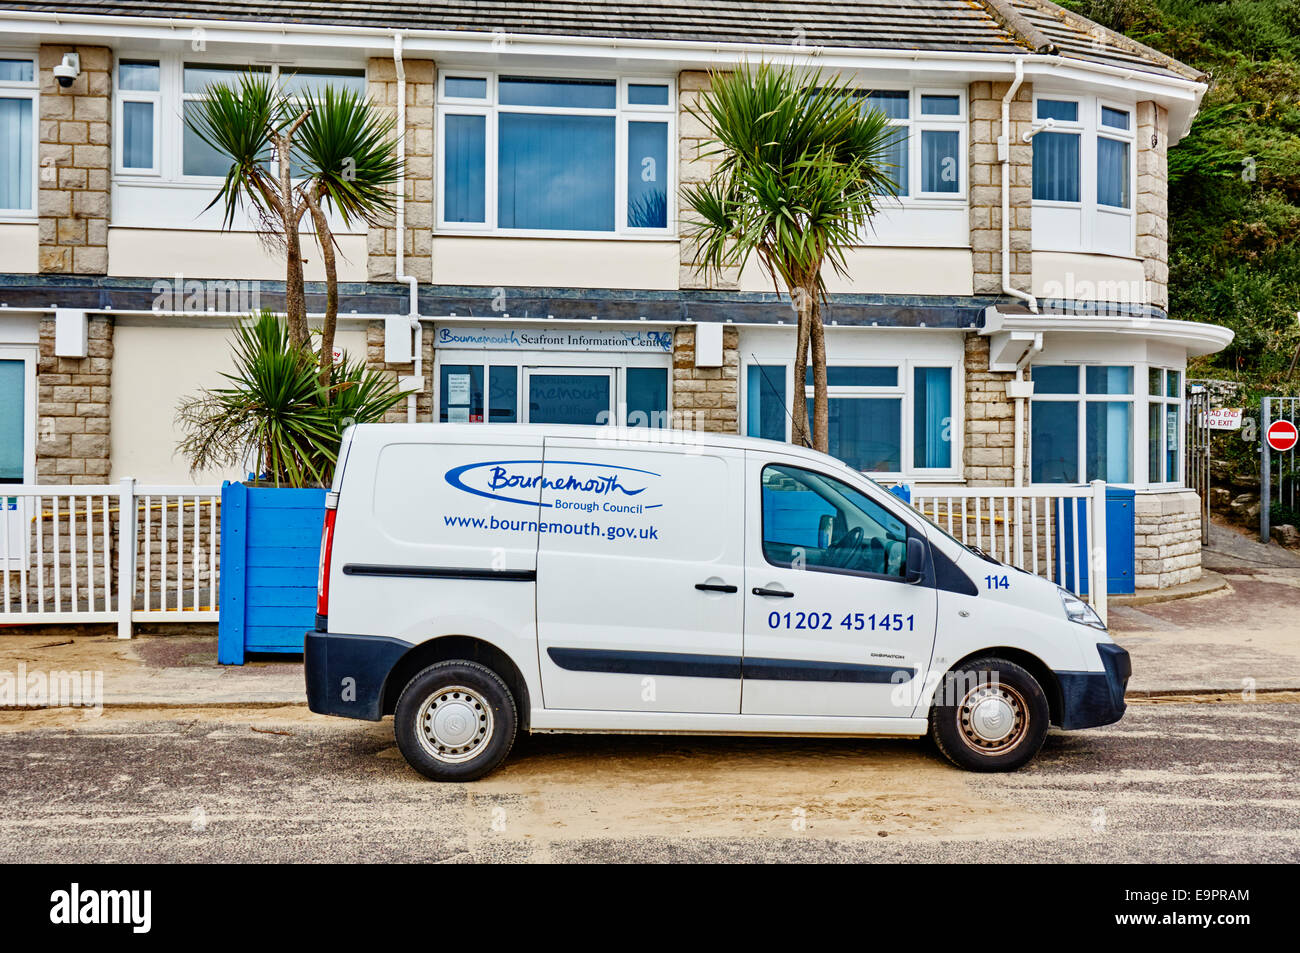 Seafront information centre and Bournemouth Borough Council van parked outside. Dorset, England, UK. - Stock Image